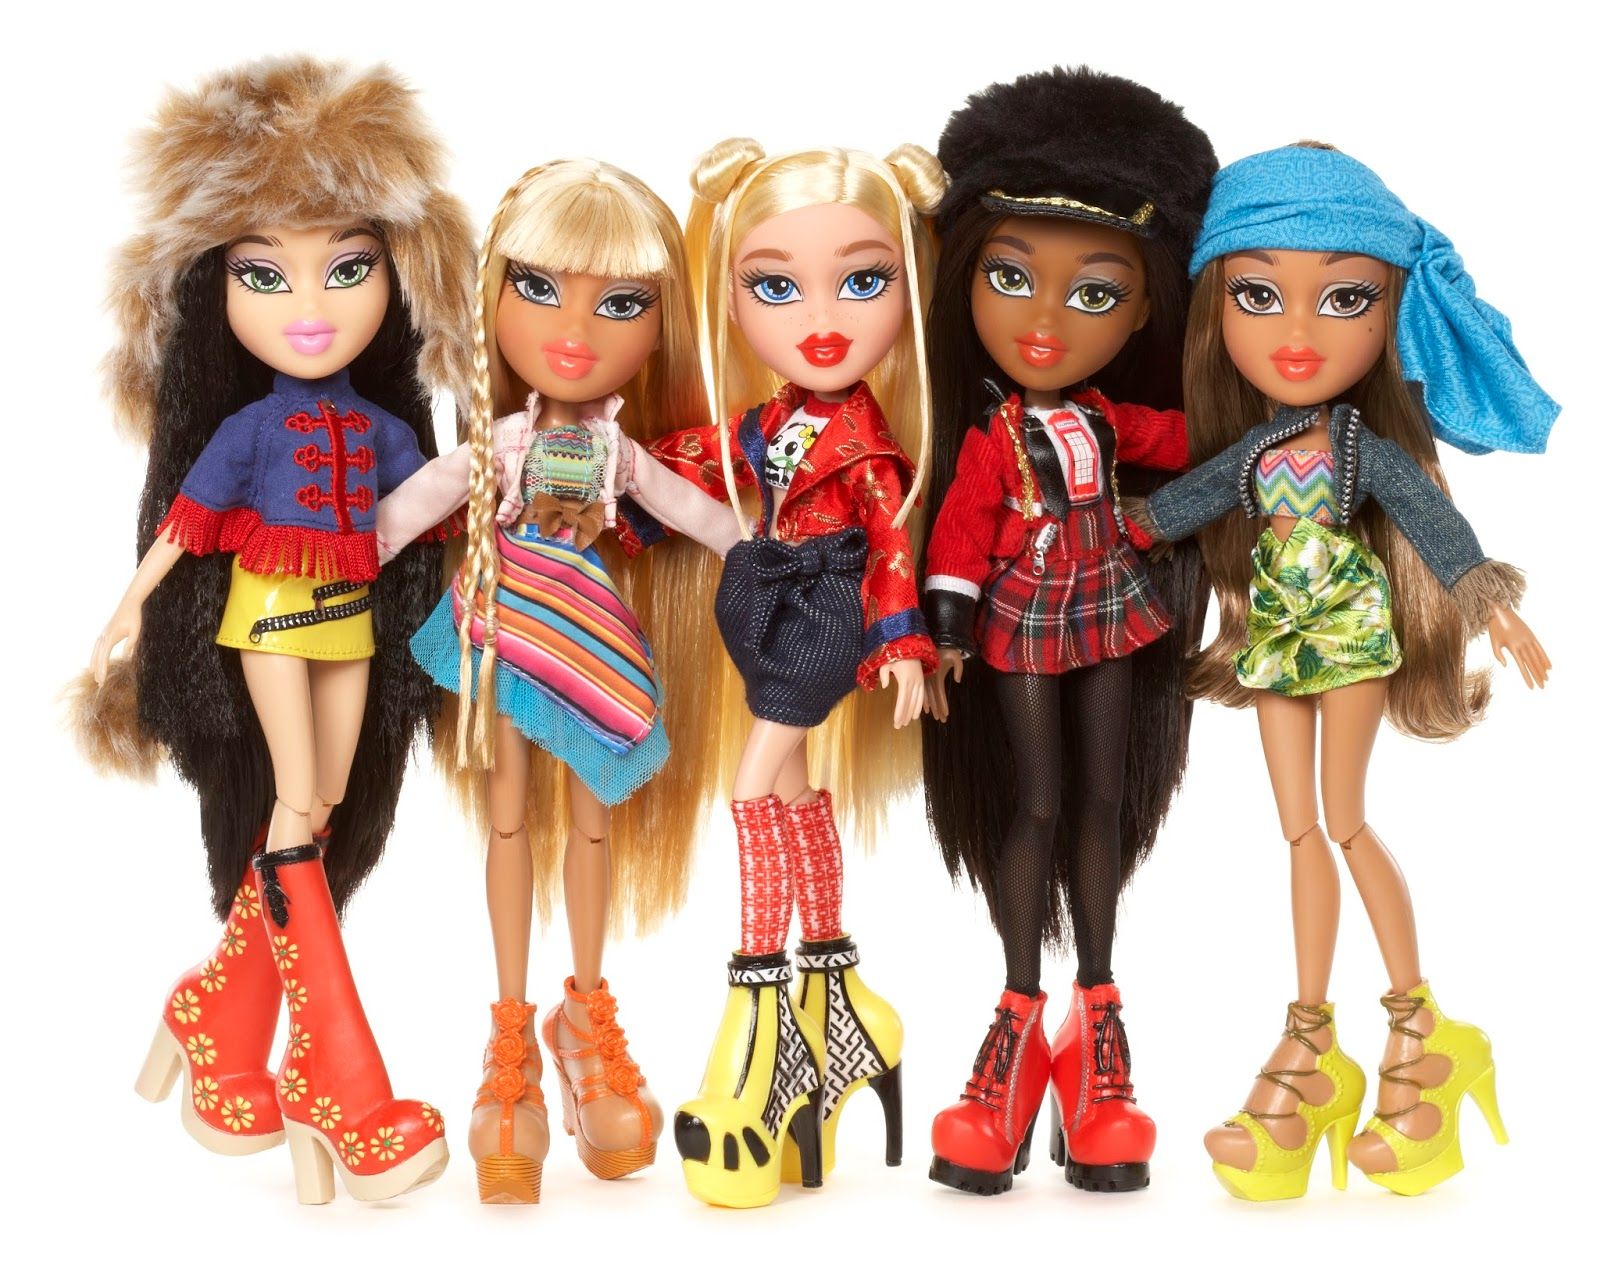 Being Tilly 39 S Mummy Bratzareback New And Improved Fashion Dolls For 2015